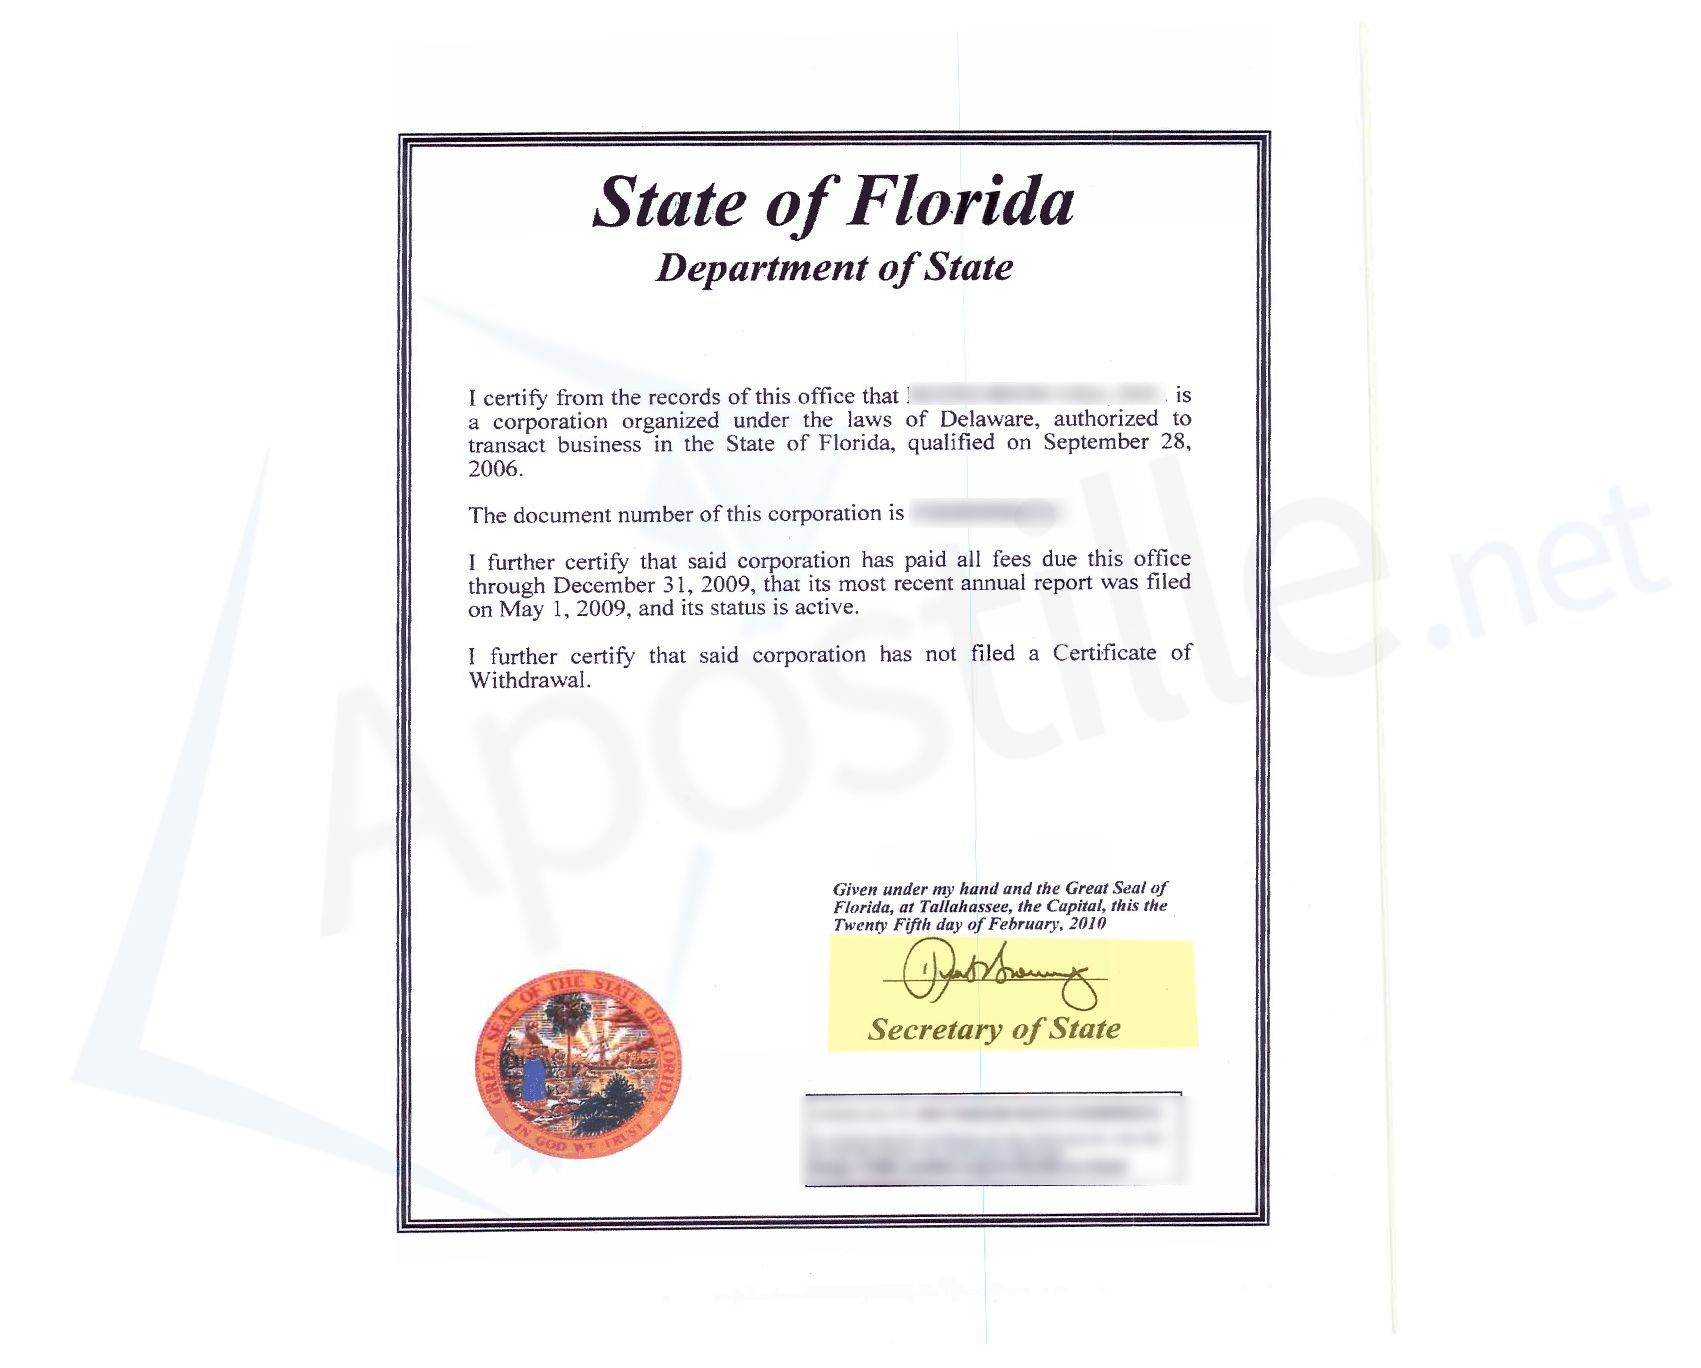 State of florida certificate of good standing state of florida state of florida certificate of good standing yadclub Choice Image